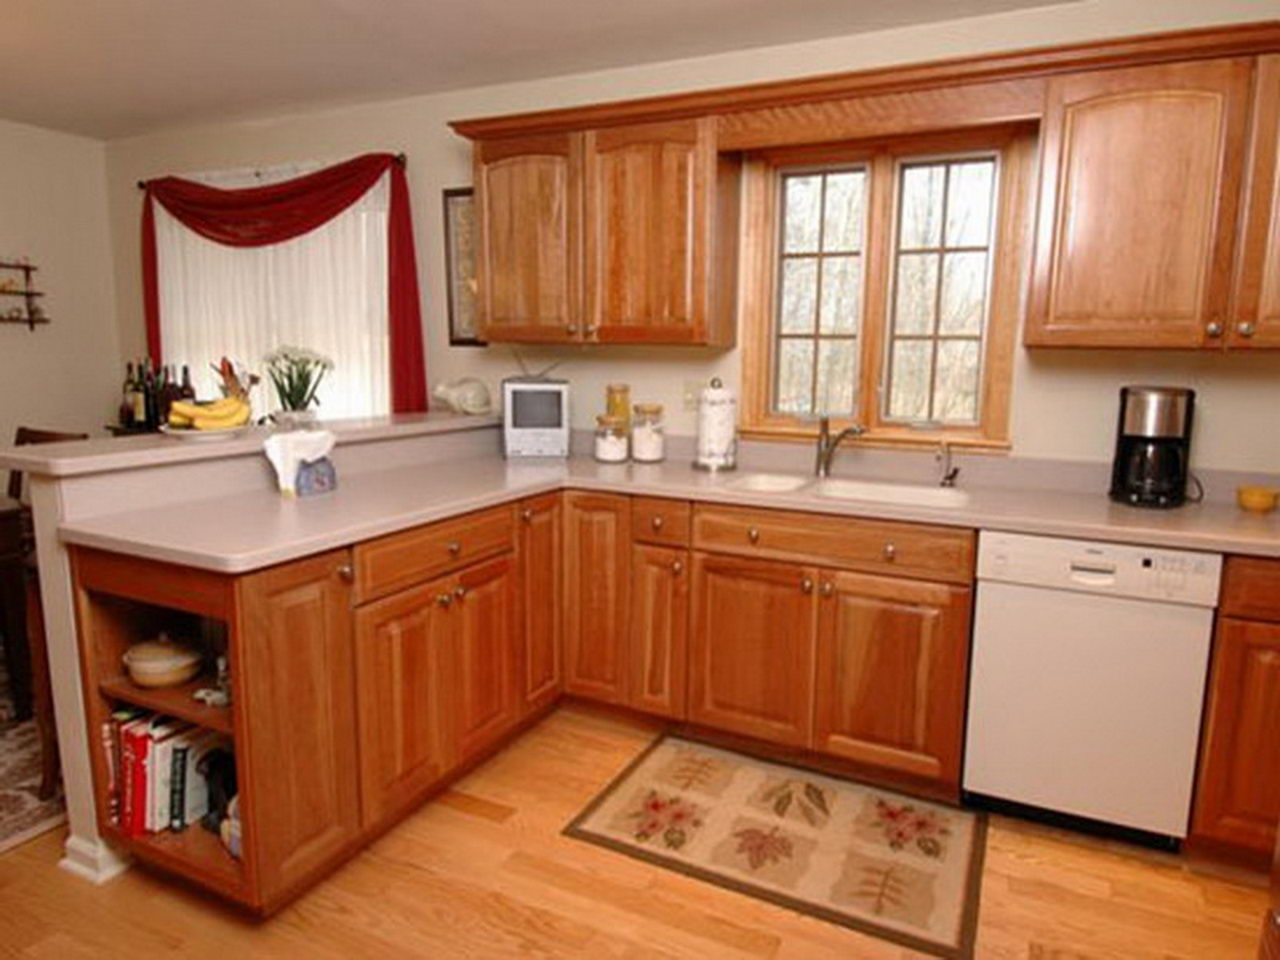 Kitchen cabinets and storage ideas homedizz for Kitchen cabinet options